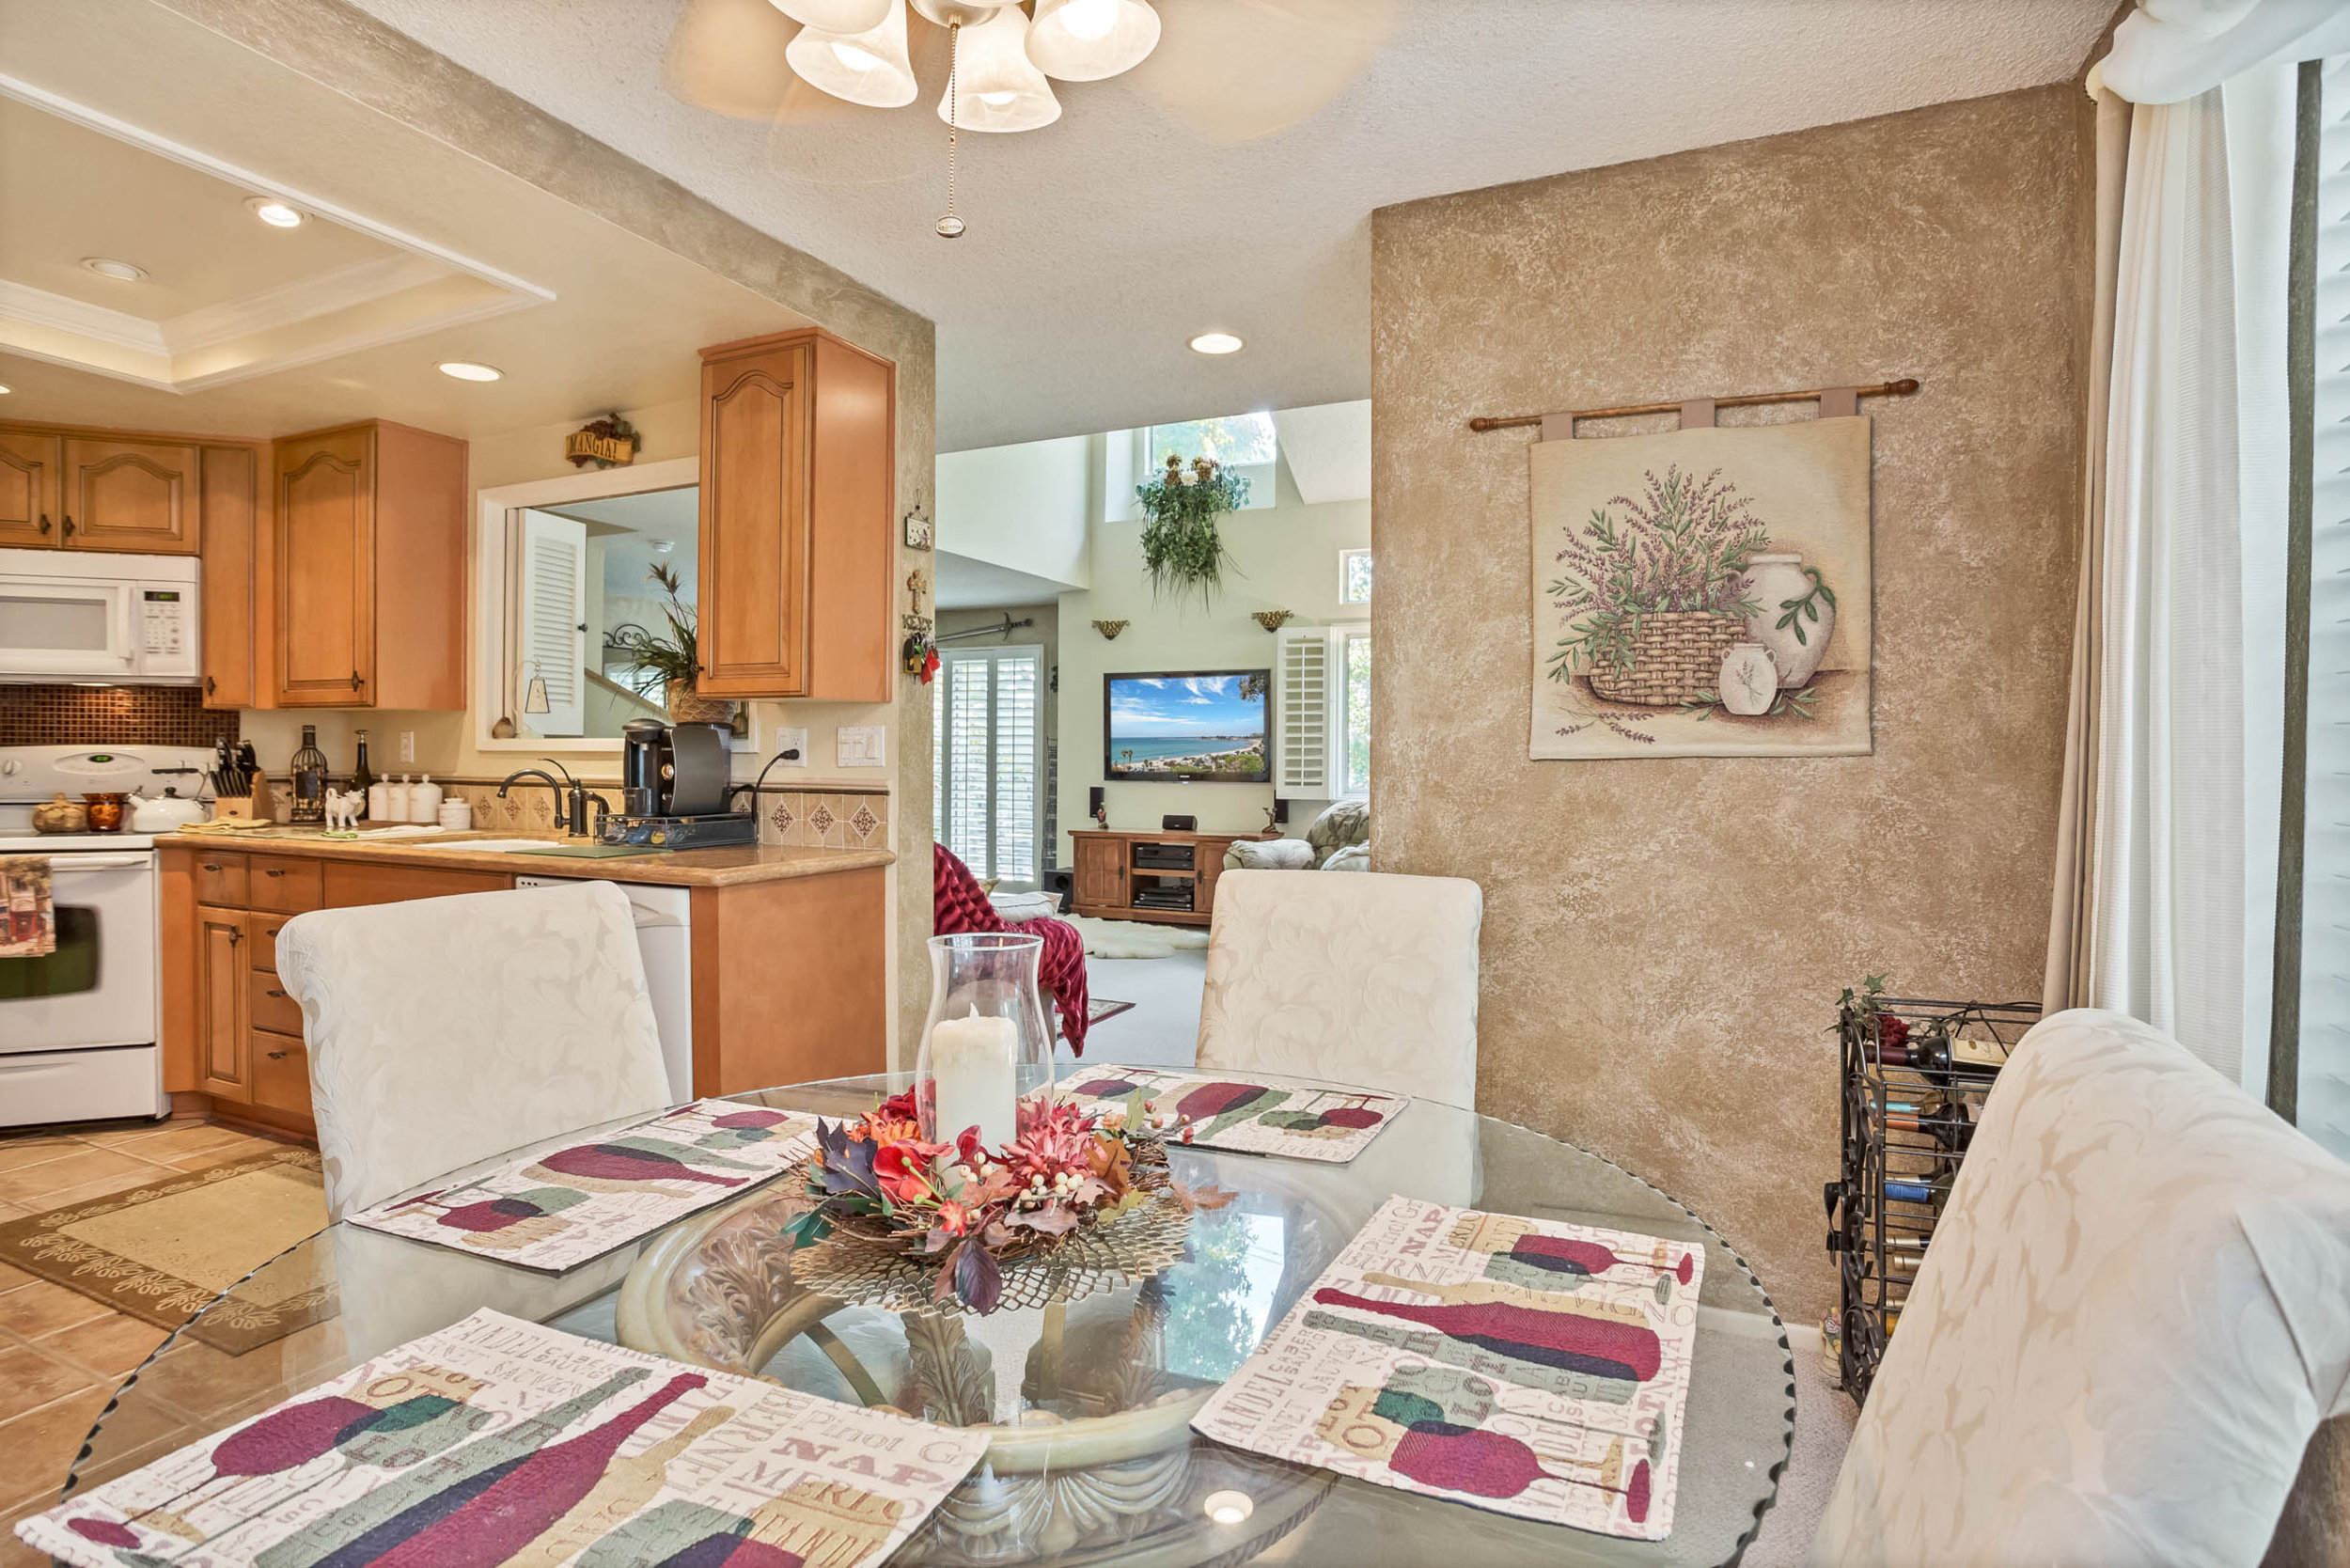 005 Dining 18 Rainwood Aliso Viejo Orange County For Sale Lease The Malibu Life Team Luxury Real Estate.jpg